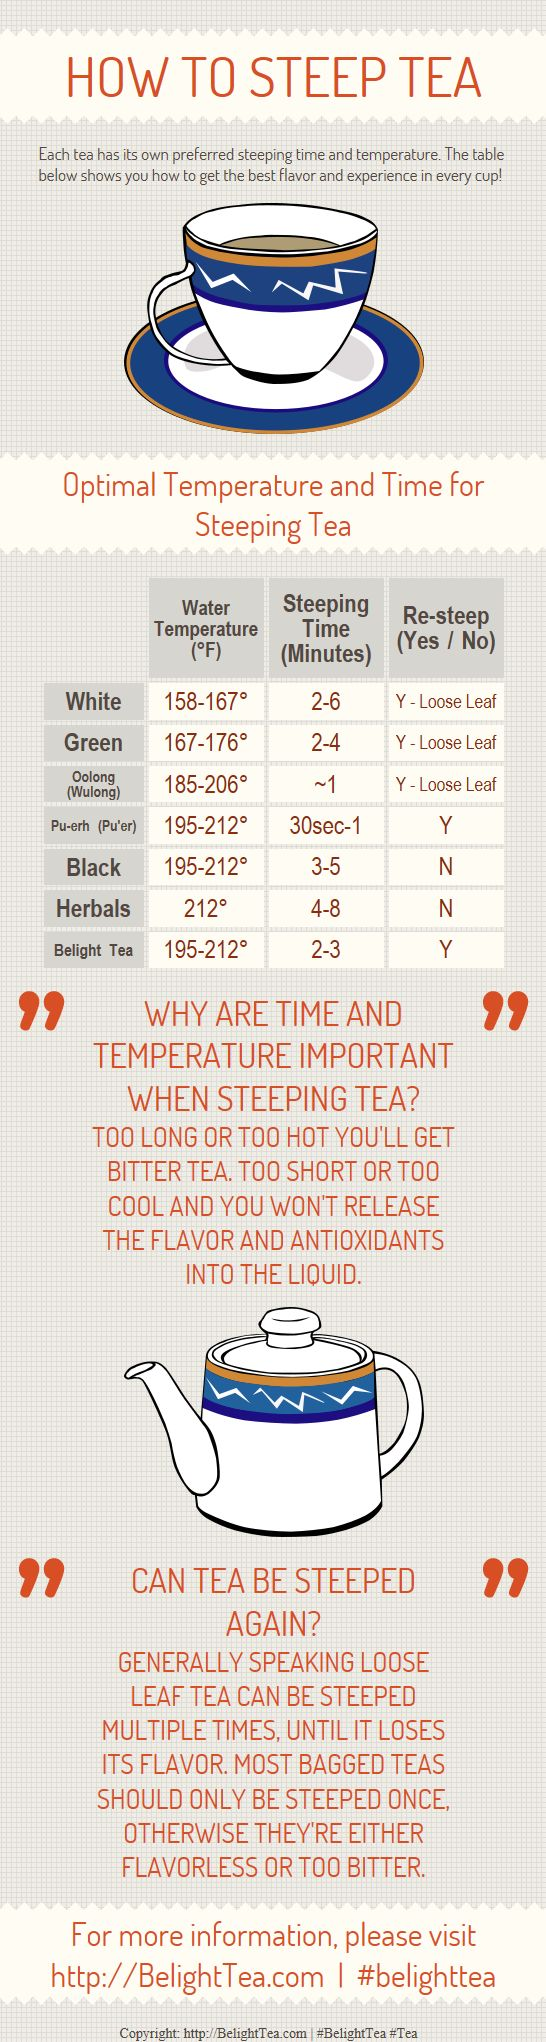 How to Steep Tea Infographic- REALLY helpful! Proper temperature makes a HUGE difference!